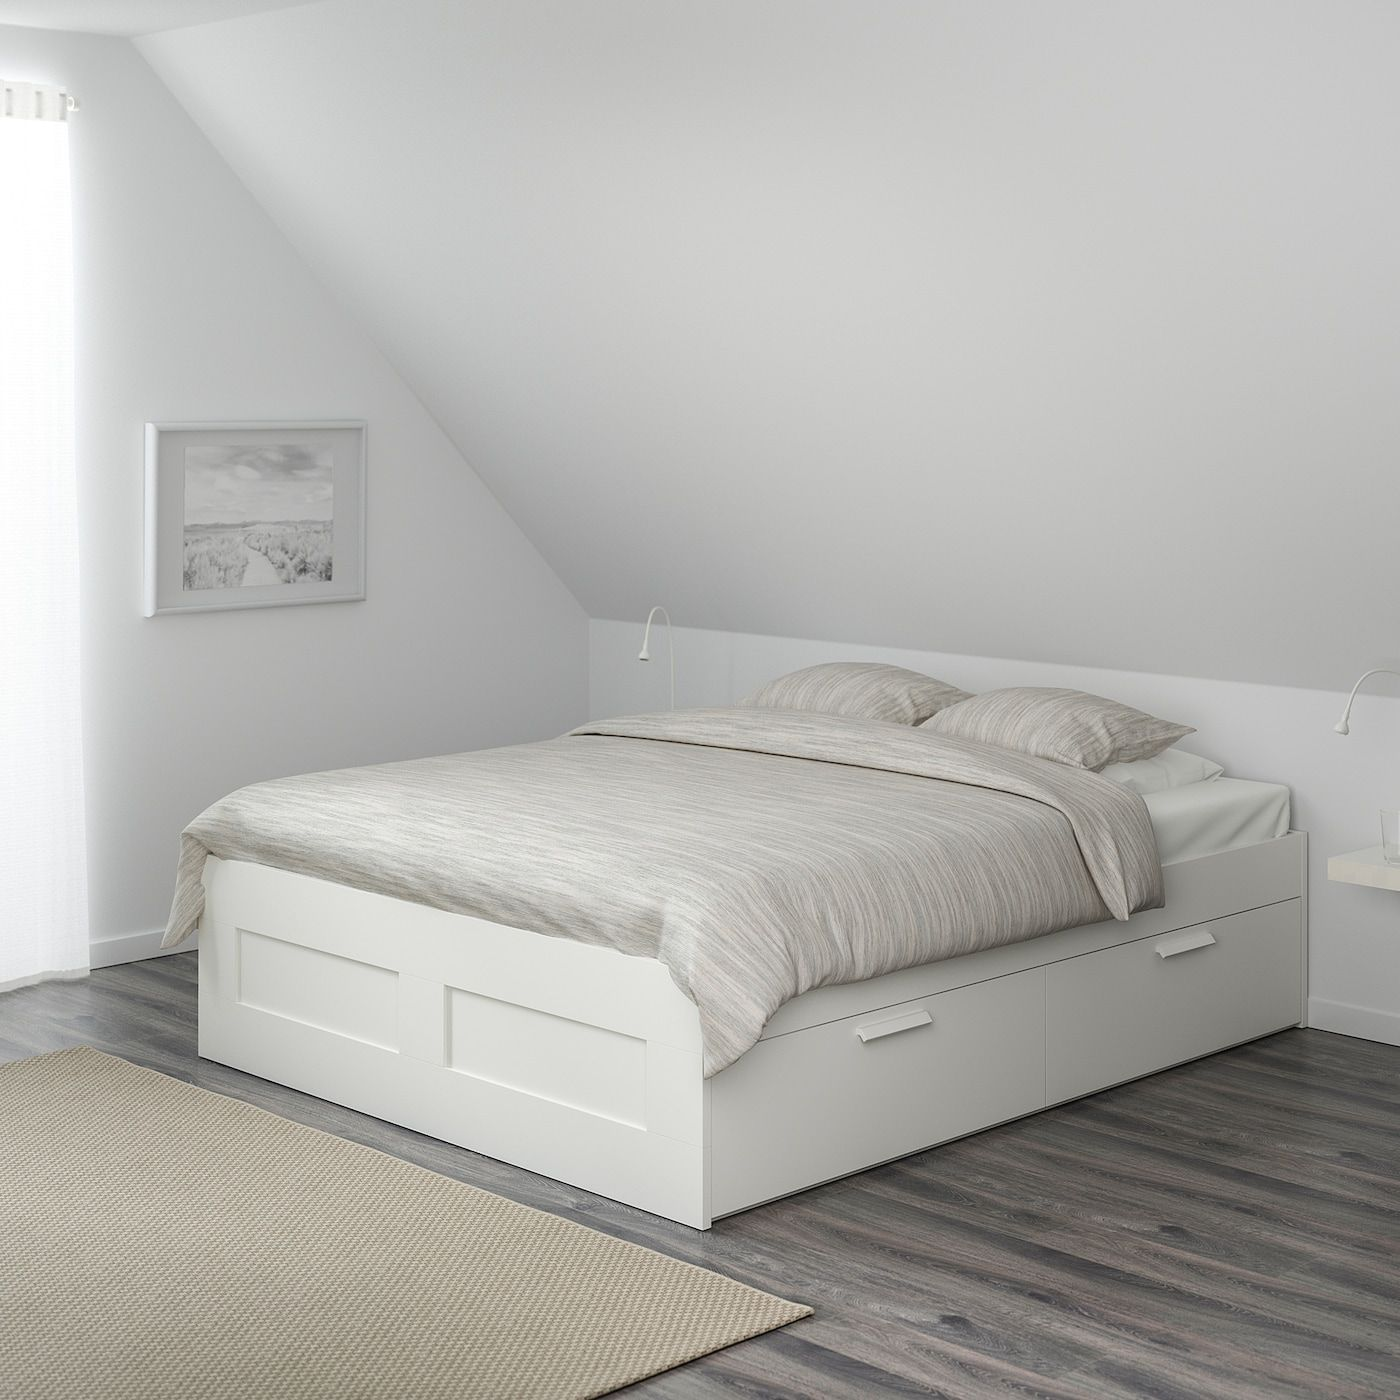 Brimnes Bed Frame With Storage White Luroy Full Ikea In 2020 Bed Frame With Storage Brimnes Bed White Bed Frame